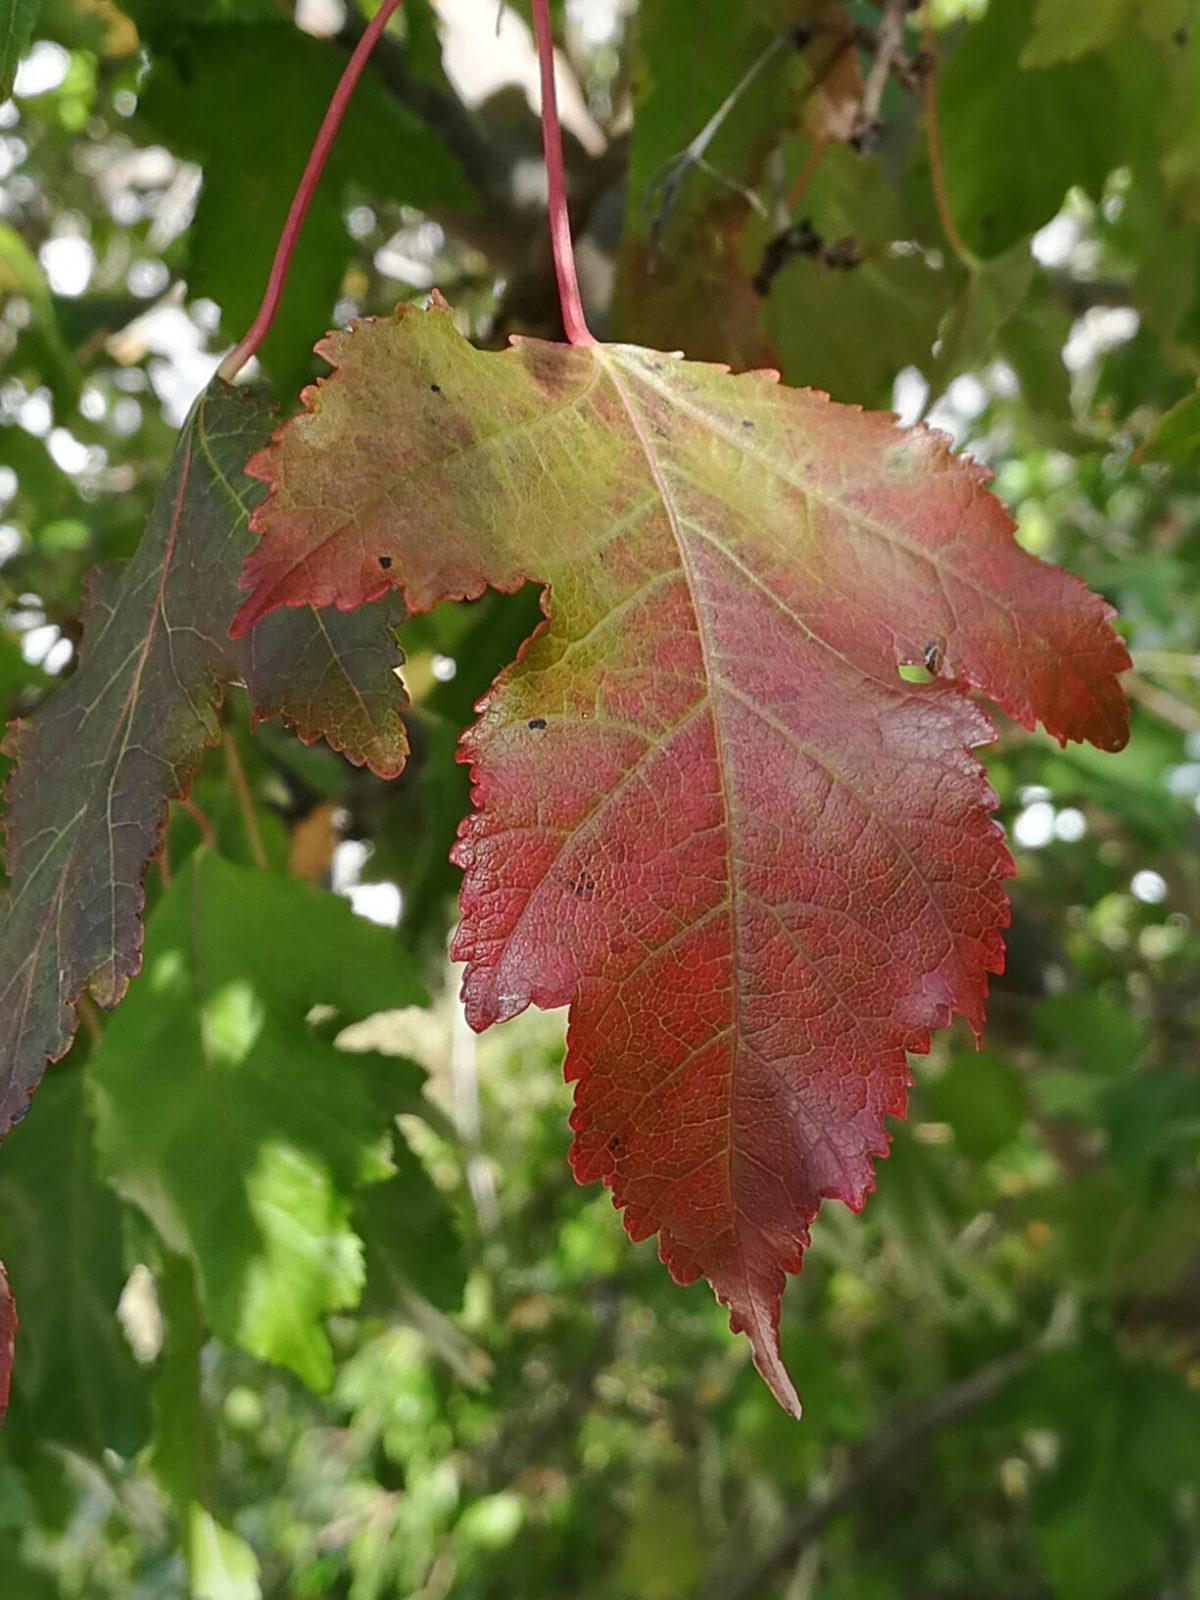 A reddish green maple leaf in close-up, with other, green leaves in the distance behind it. The leaf points downwards.